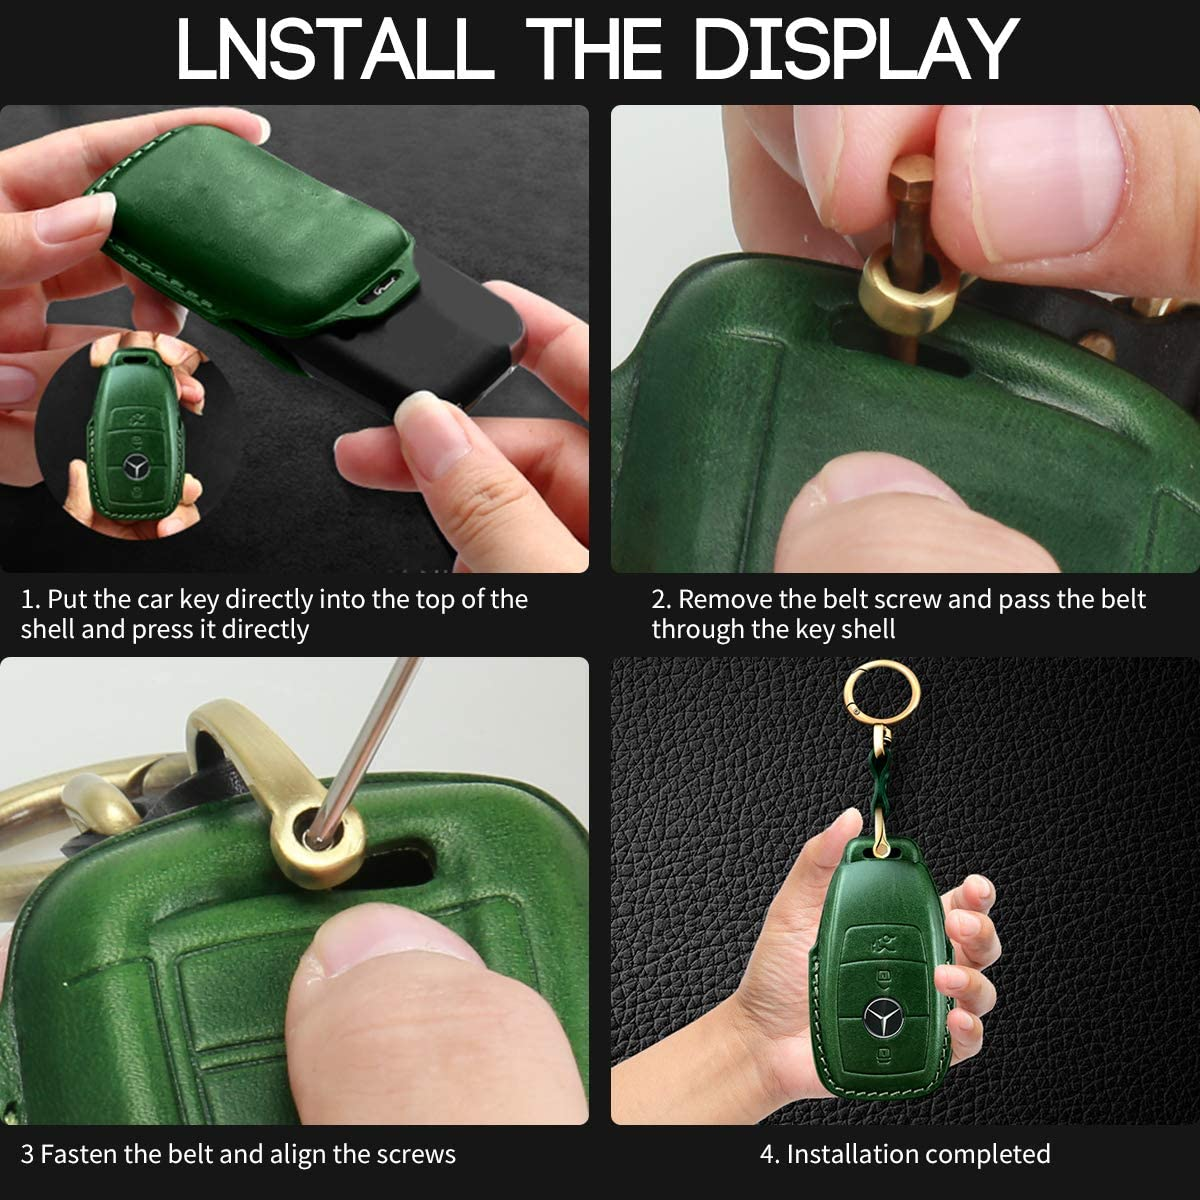 Full Protection Soft Leather Key Fob Case Compatible with Mercedes Benz Keyless Remote Control Key Chain E Class 2017,S Class 2018 Smart Keychain Intermerge for Mercedes Benz Key Fob Cover Green